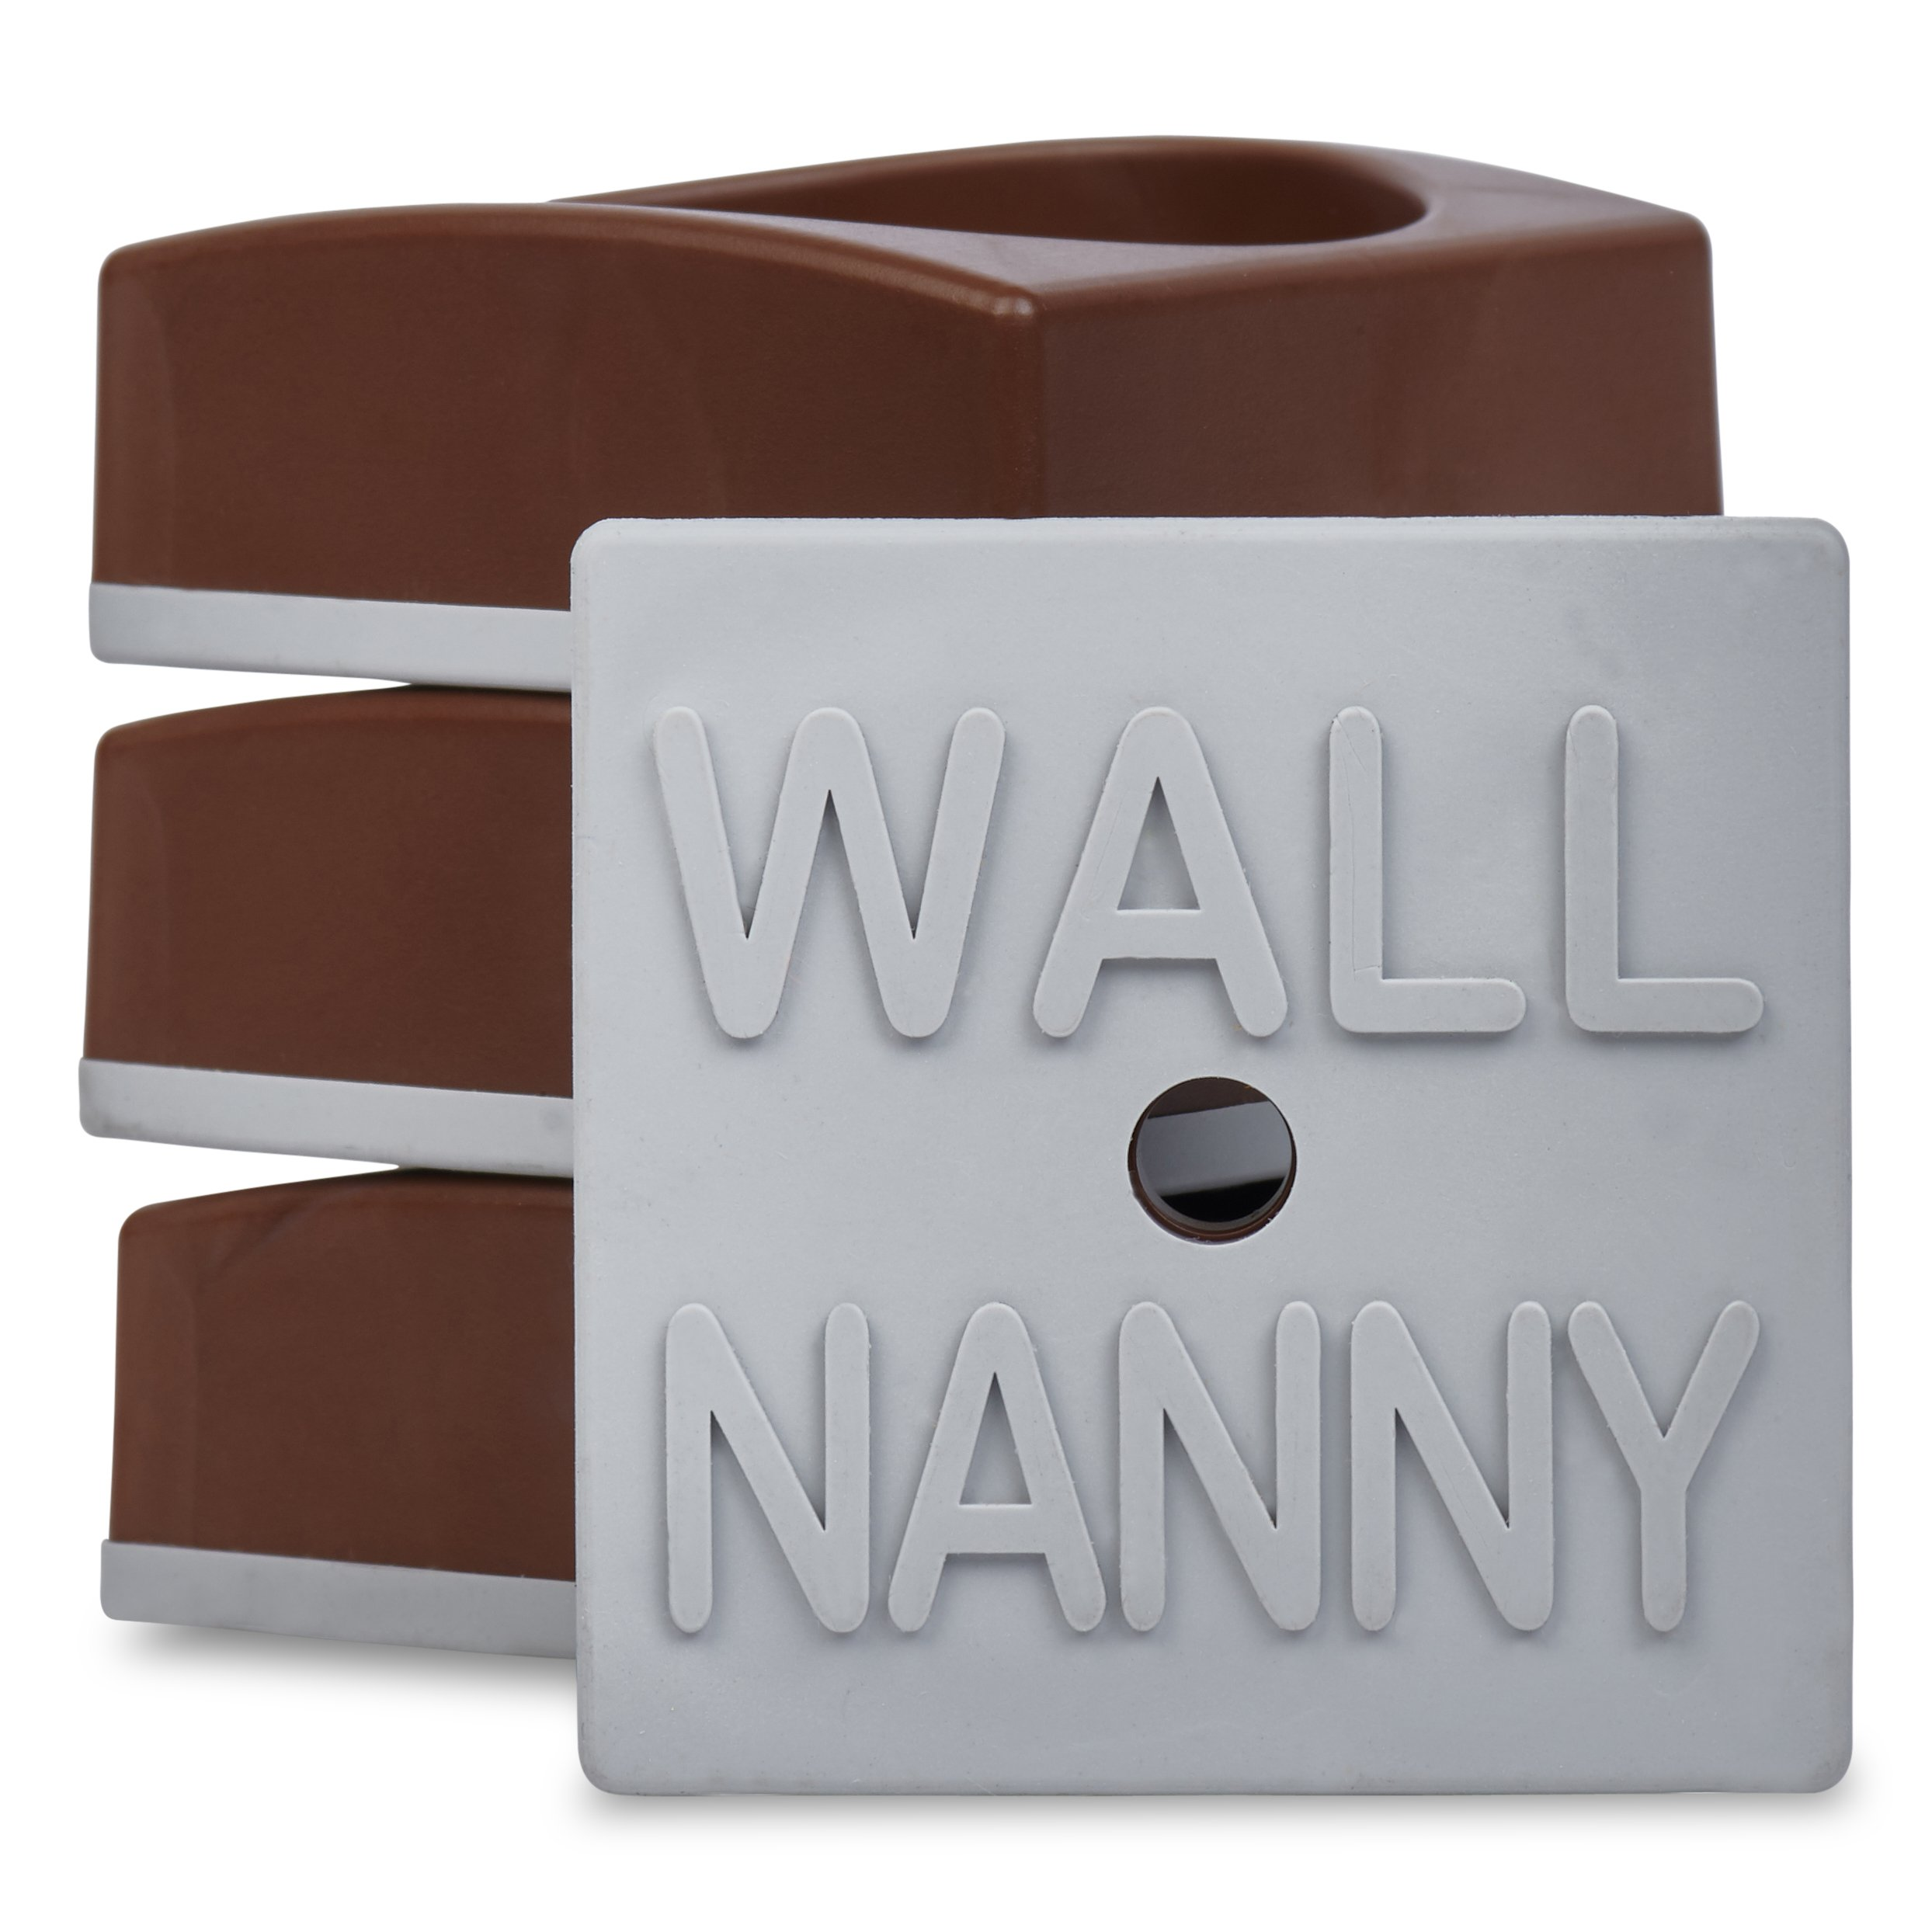 Wall Nanny Mini (4 Pack - Made in USA) Smallest Low-Profile Wall Protector for Baby Gates - Perfect in Doorways - Best Saver Cups Guard Trim & Paint for Child Dog Pet & Safety Pressure Gate (Brown)